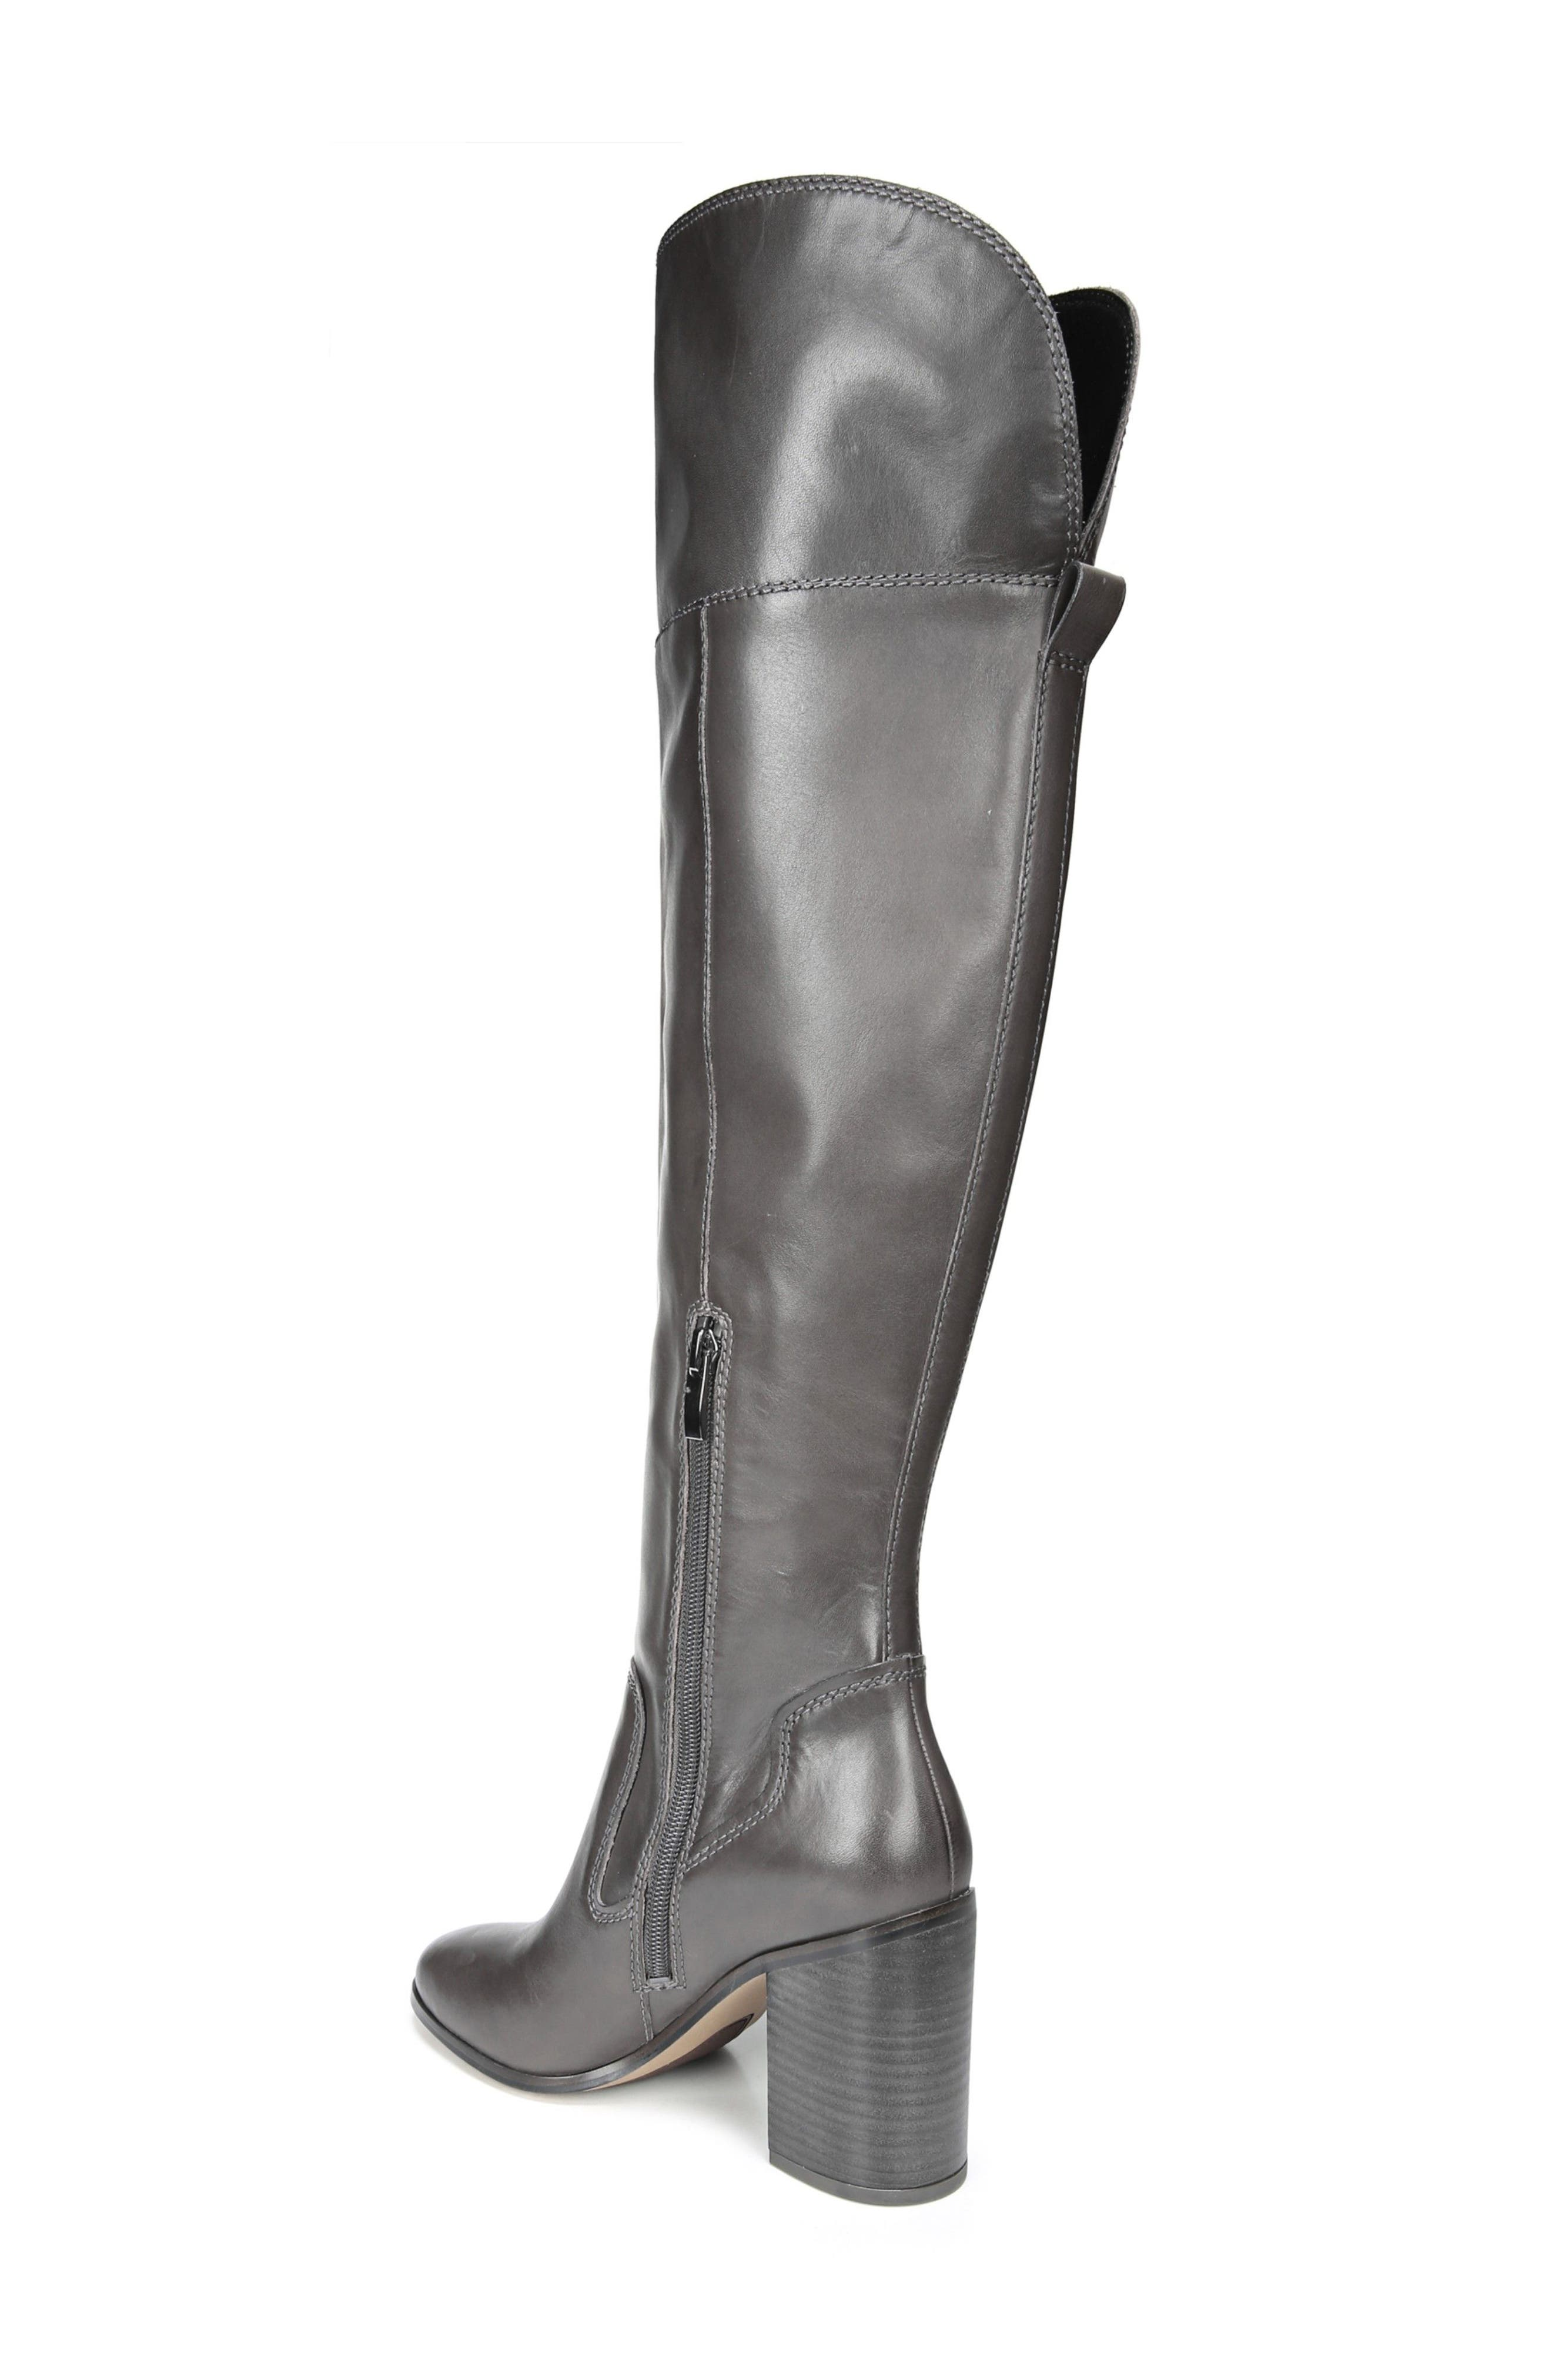 Freda Over the Knee Boot,                             Alternate thumbnail 2, color,                             Peat Leather